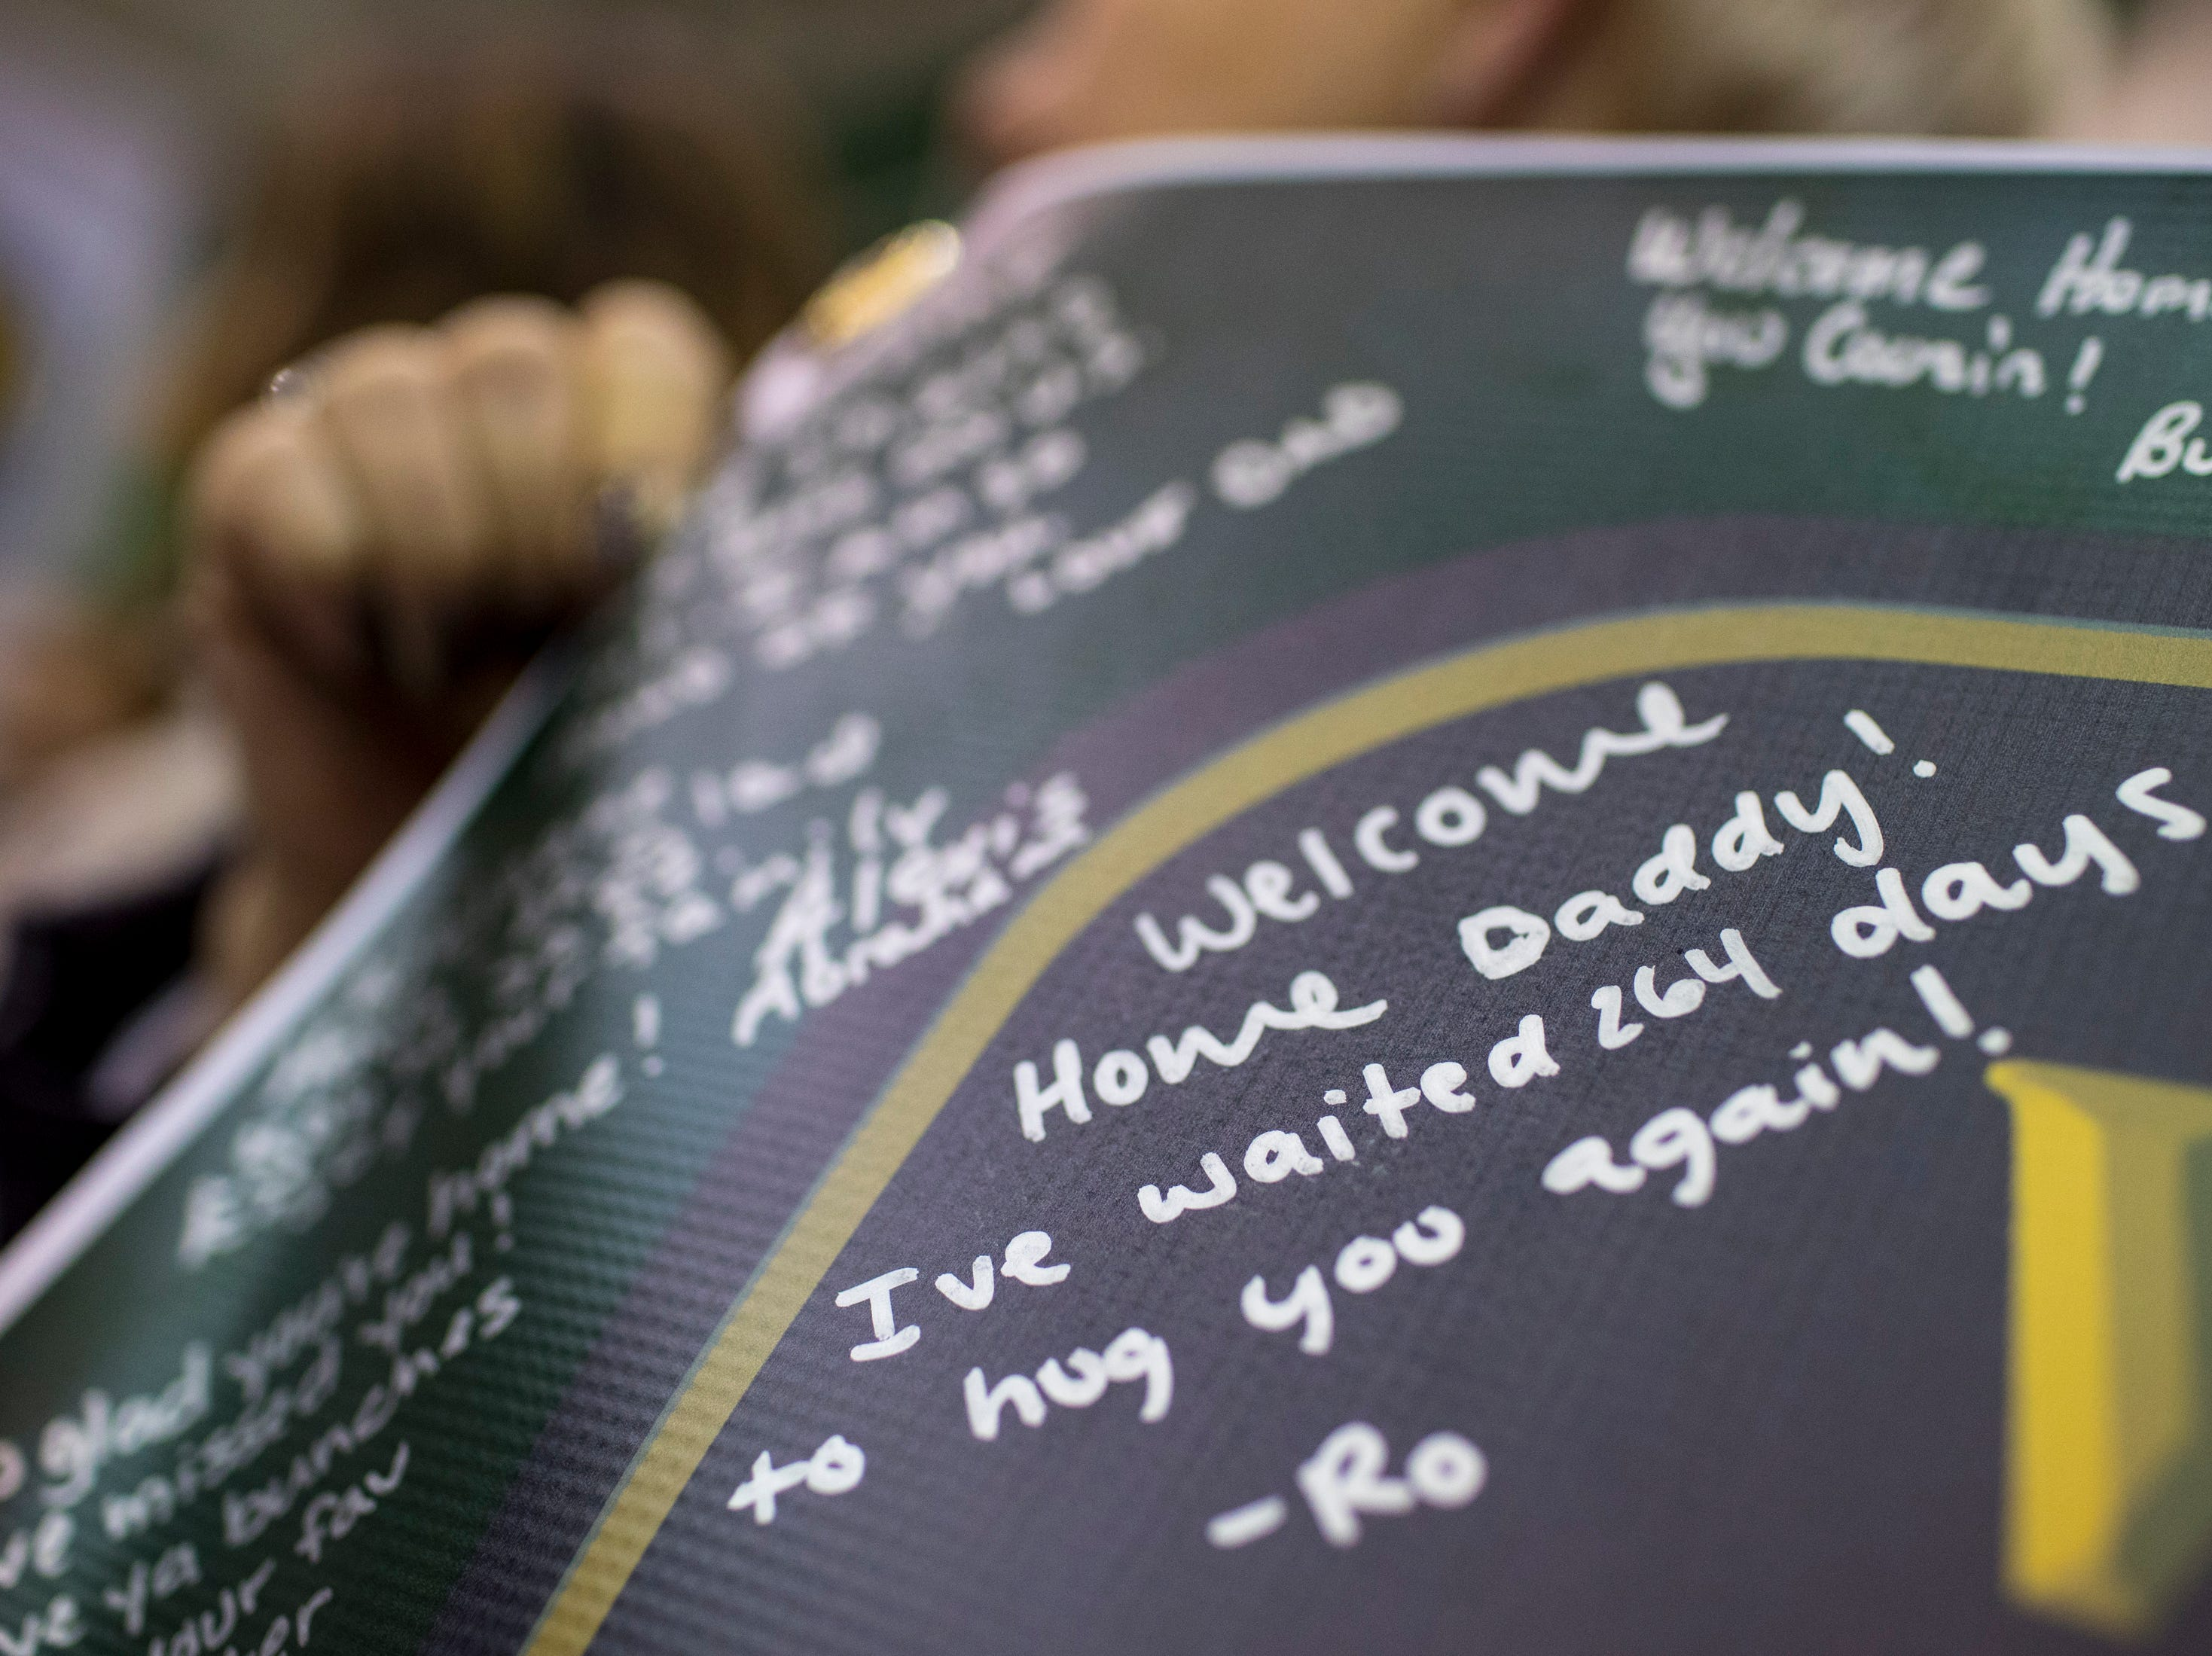 A welcome home note for Specialist Dustin Mattox from his son Rowan Mattox, is written on a banner held by Specialist Mattox's family, during the welcome home ceremony for the 2nd Battalion, 44th Air Defense Artillery Regiment and 101st Airborne Division at Fort Campbell in the early hours of Monday, Nov. 19, 2018. The soldiers were returning from a 9-month deployment in Afghanistan.